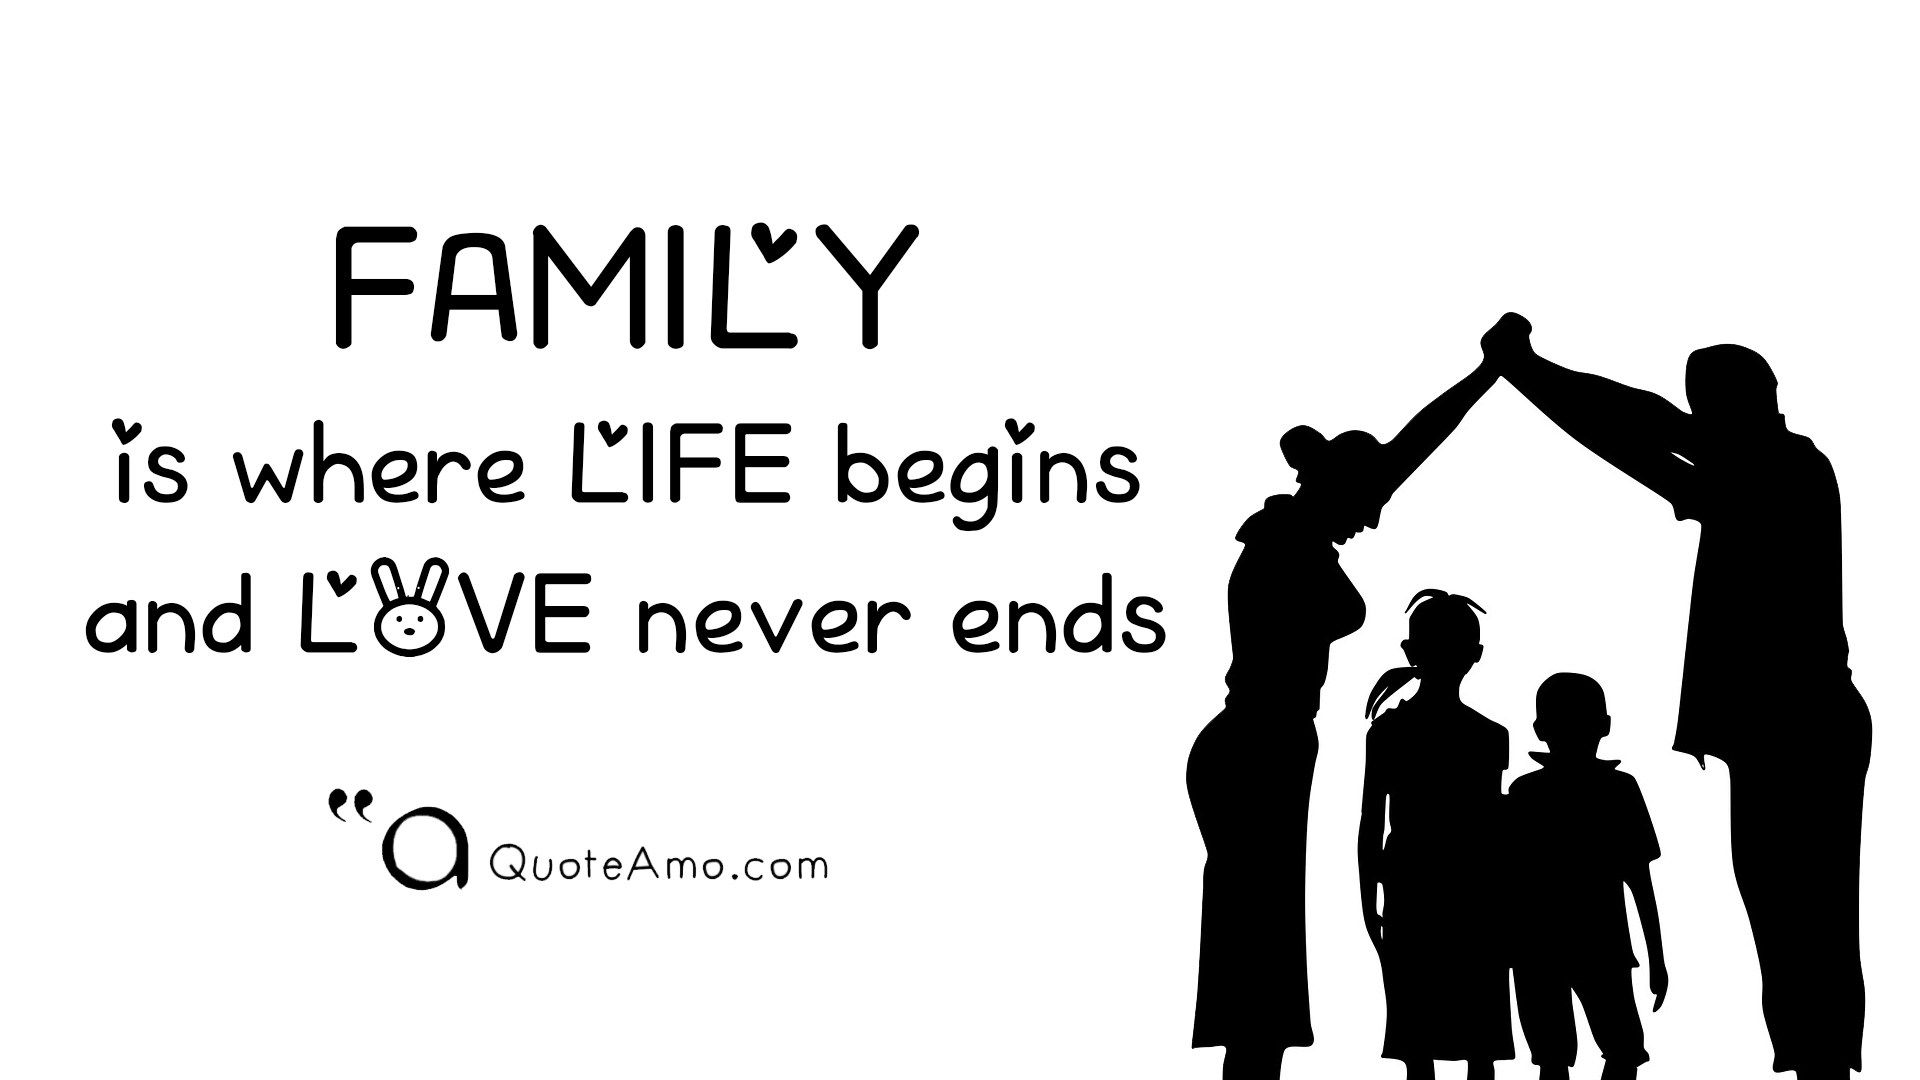 Quotes About Family Background Quotes Hd Screen 1920 1080 Family Quotes Funny Family Motivational Quotes Super Funny Quotes